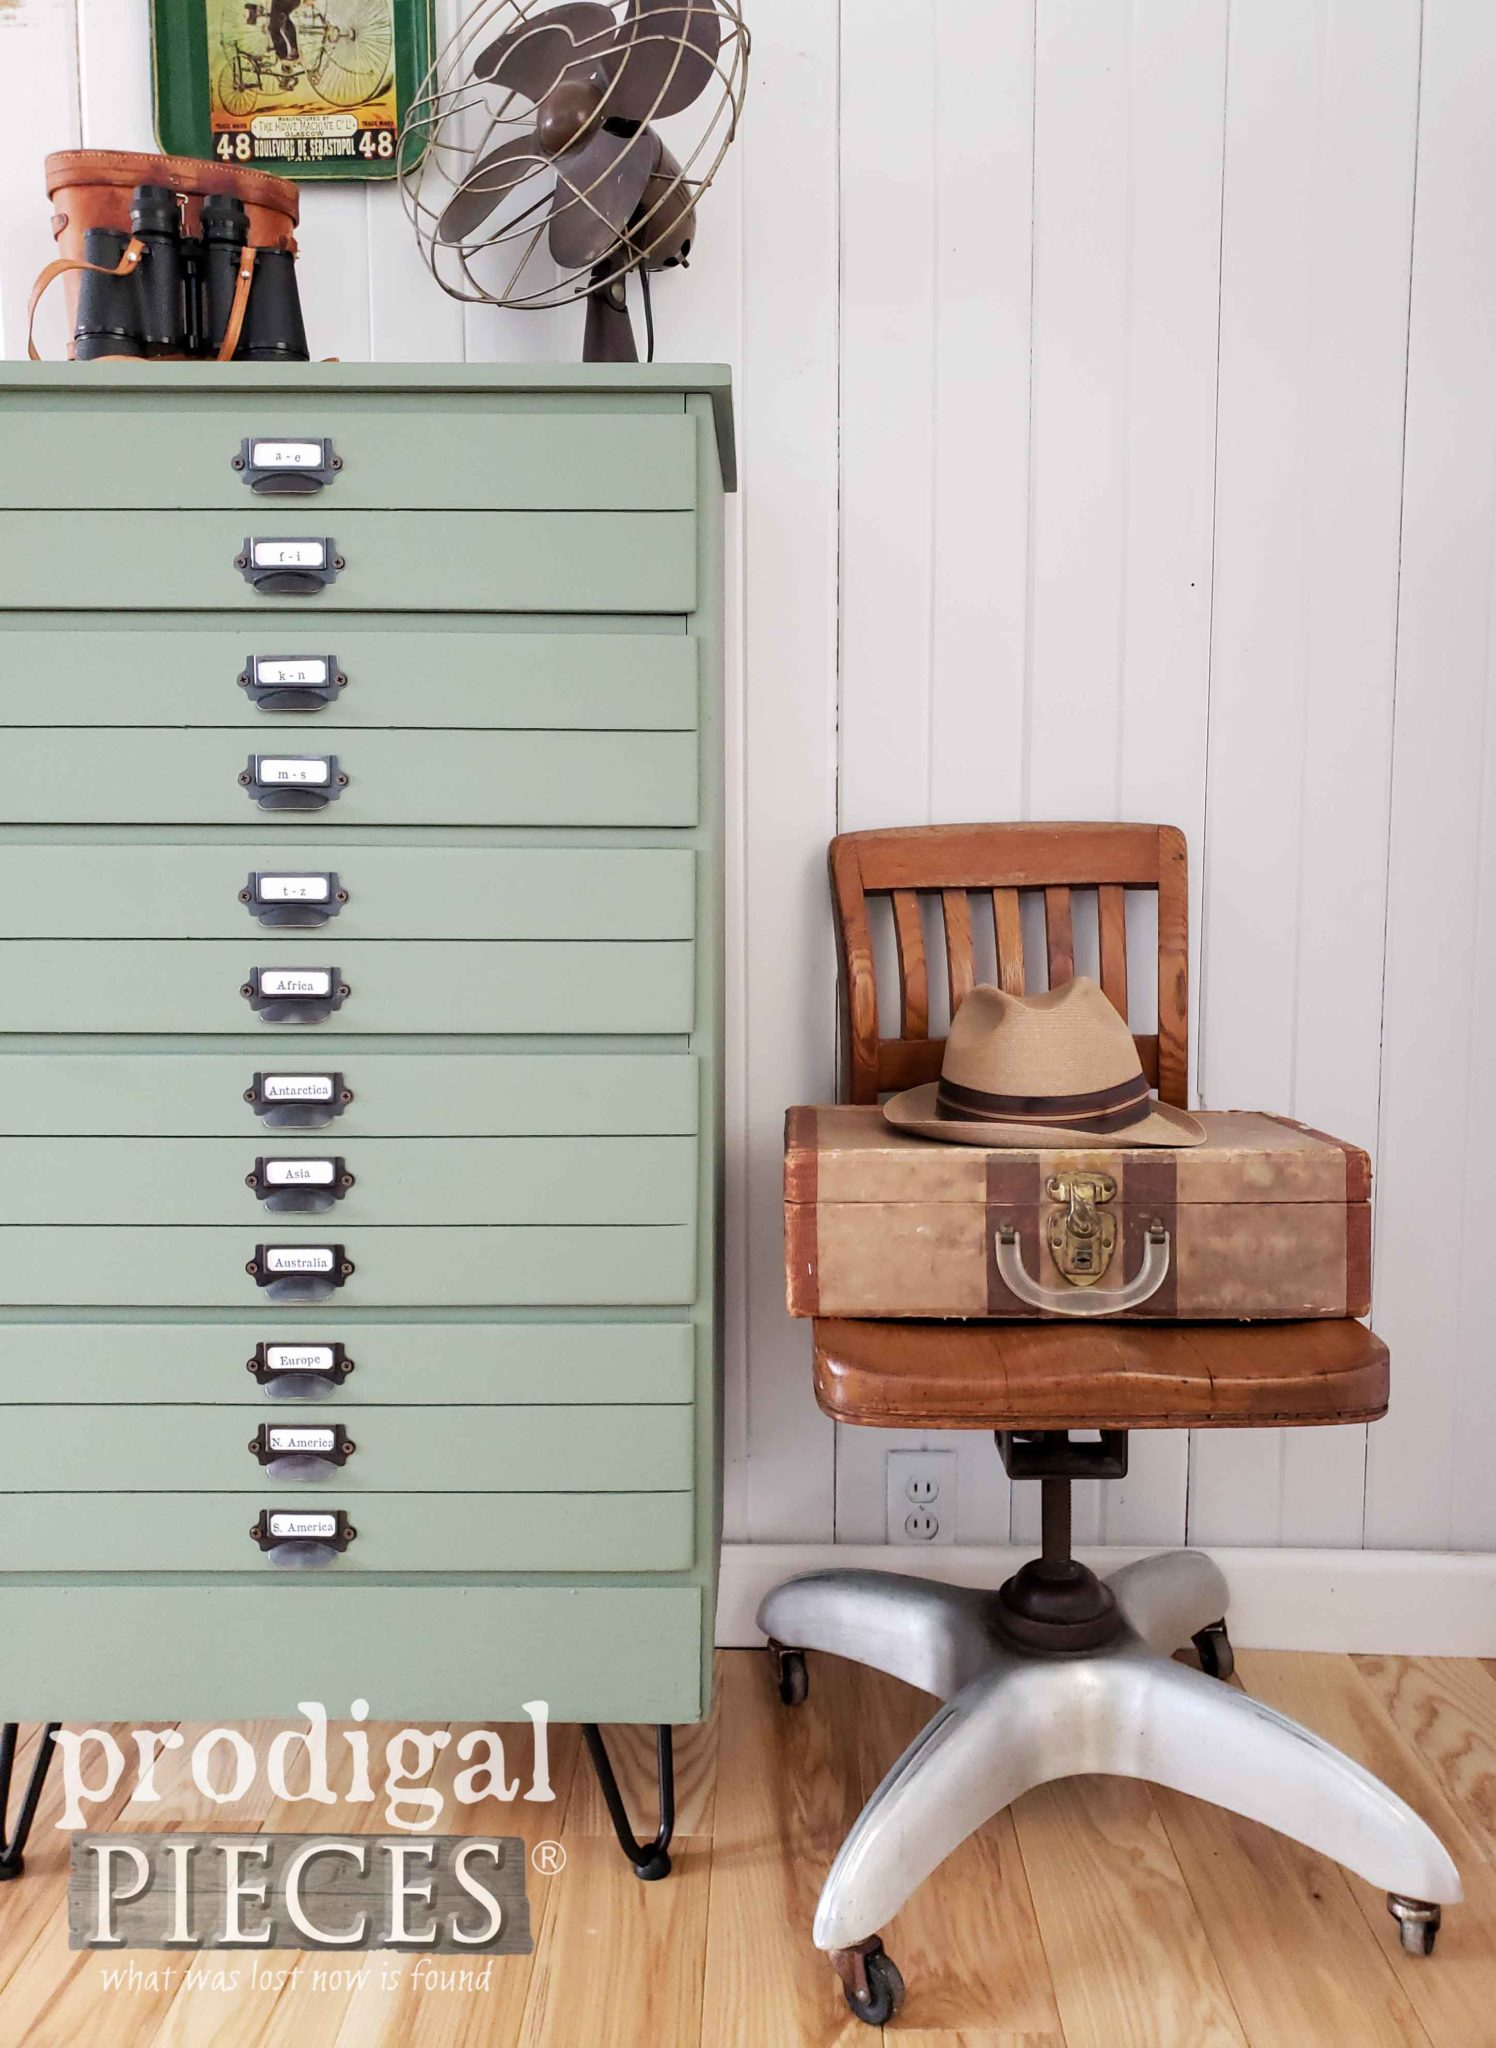 Industrial Map Cabinet Made from an Upcycled Chest of Drawers by Larissa of Prodigal Pieces | Video tutorial at prodigalpieces.com #prodigalpieces #videos #tutorial #home #diy #furniture #homedecor #farmhouse #homedecorideas